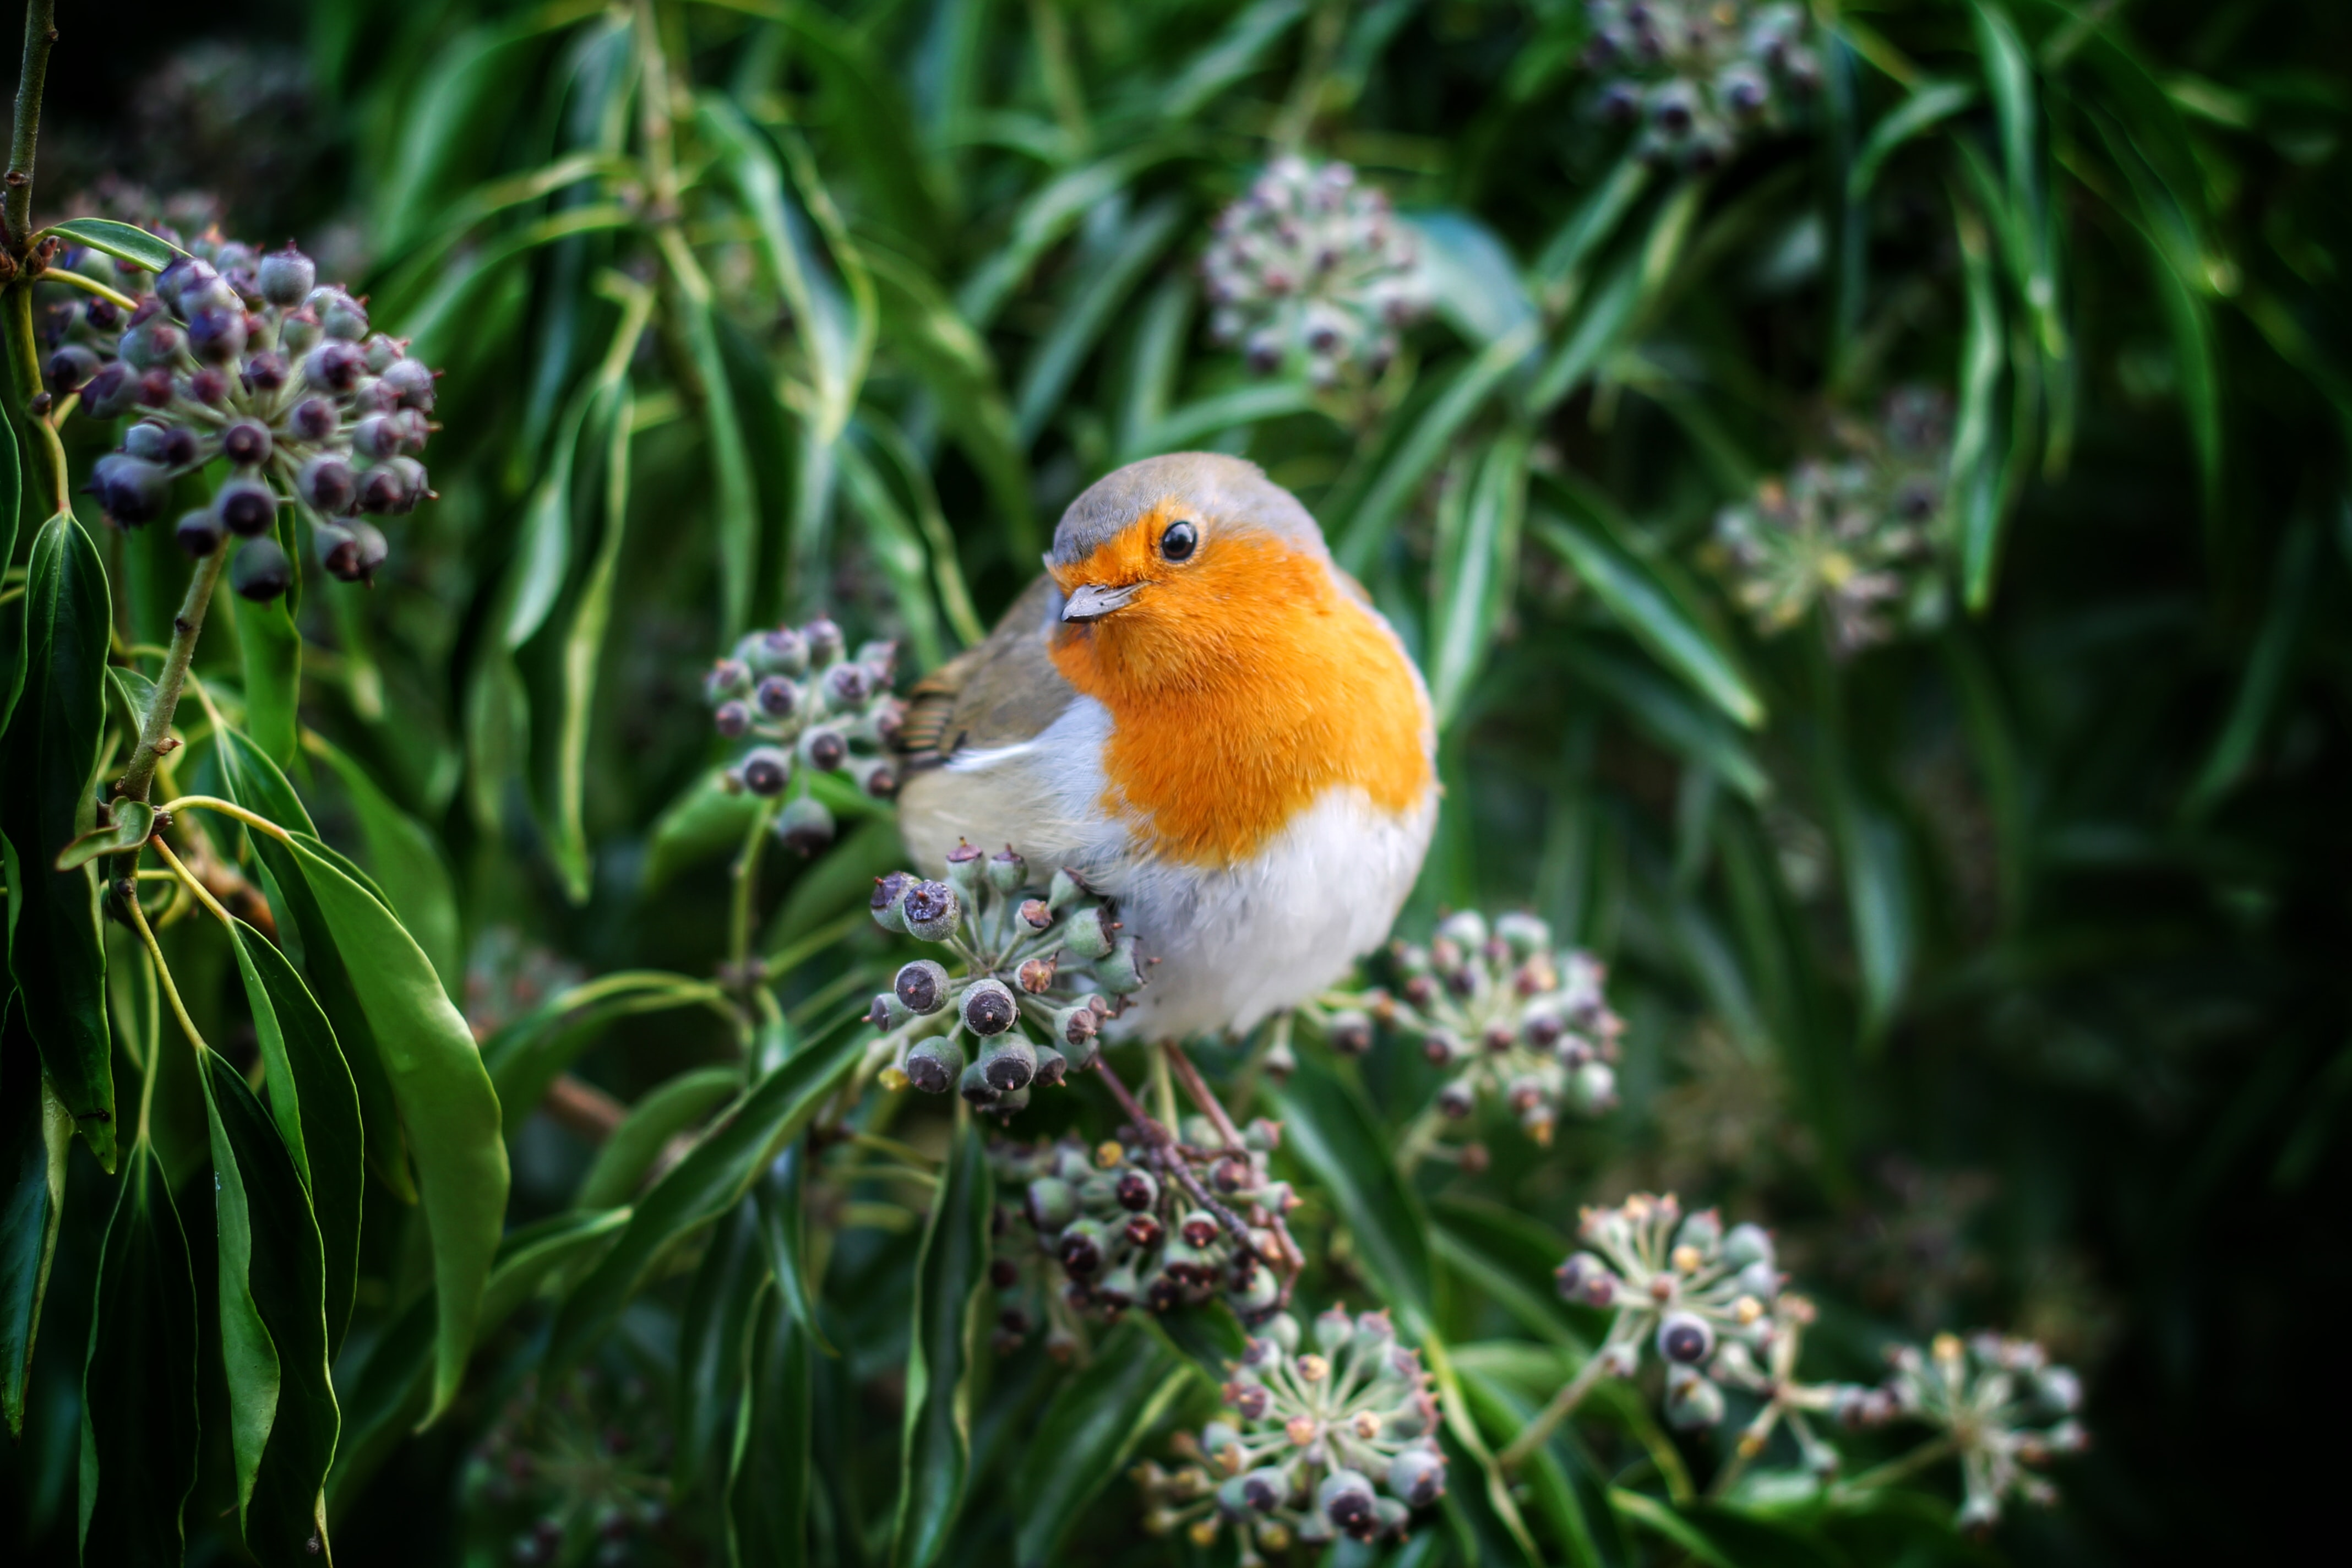 A robin perched on the leaves of a berry-producing plant